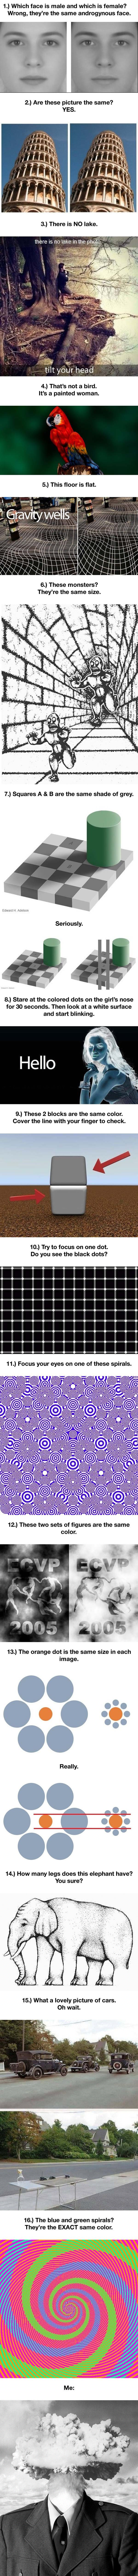 OᑭTIᑕᗩᒪ IᒪᒪᑌᔕIOᑎᔕ. ~ Melt your mind with these optical illusions!<< some for me are simply indescribable... :O